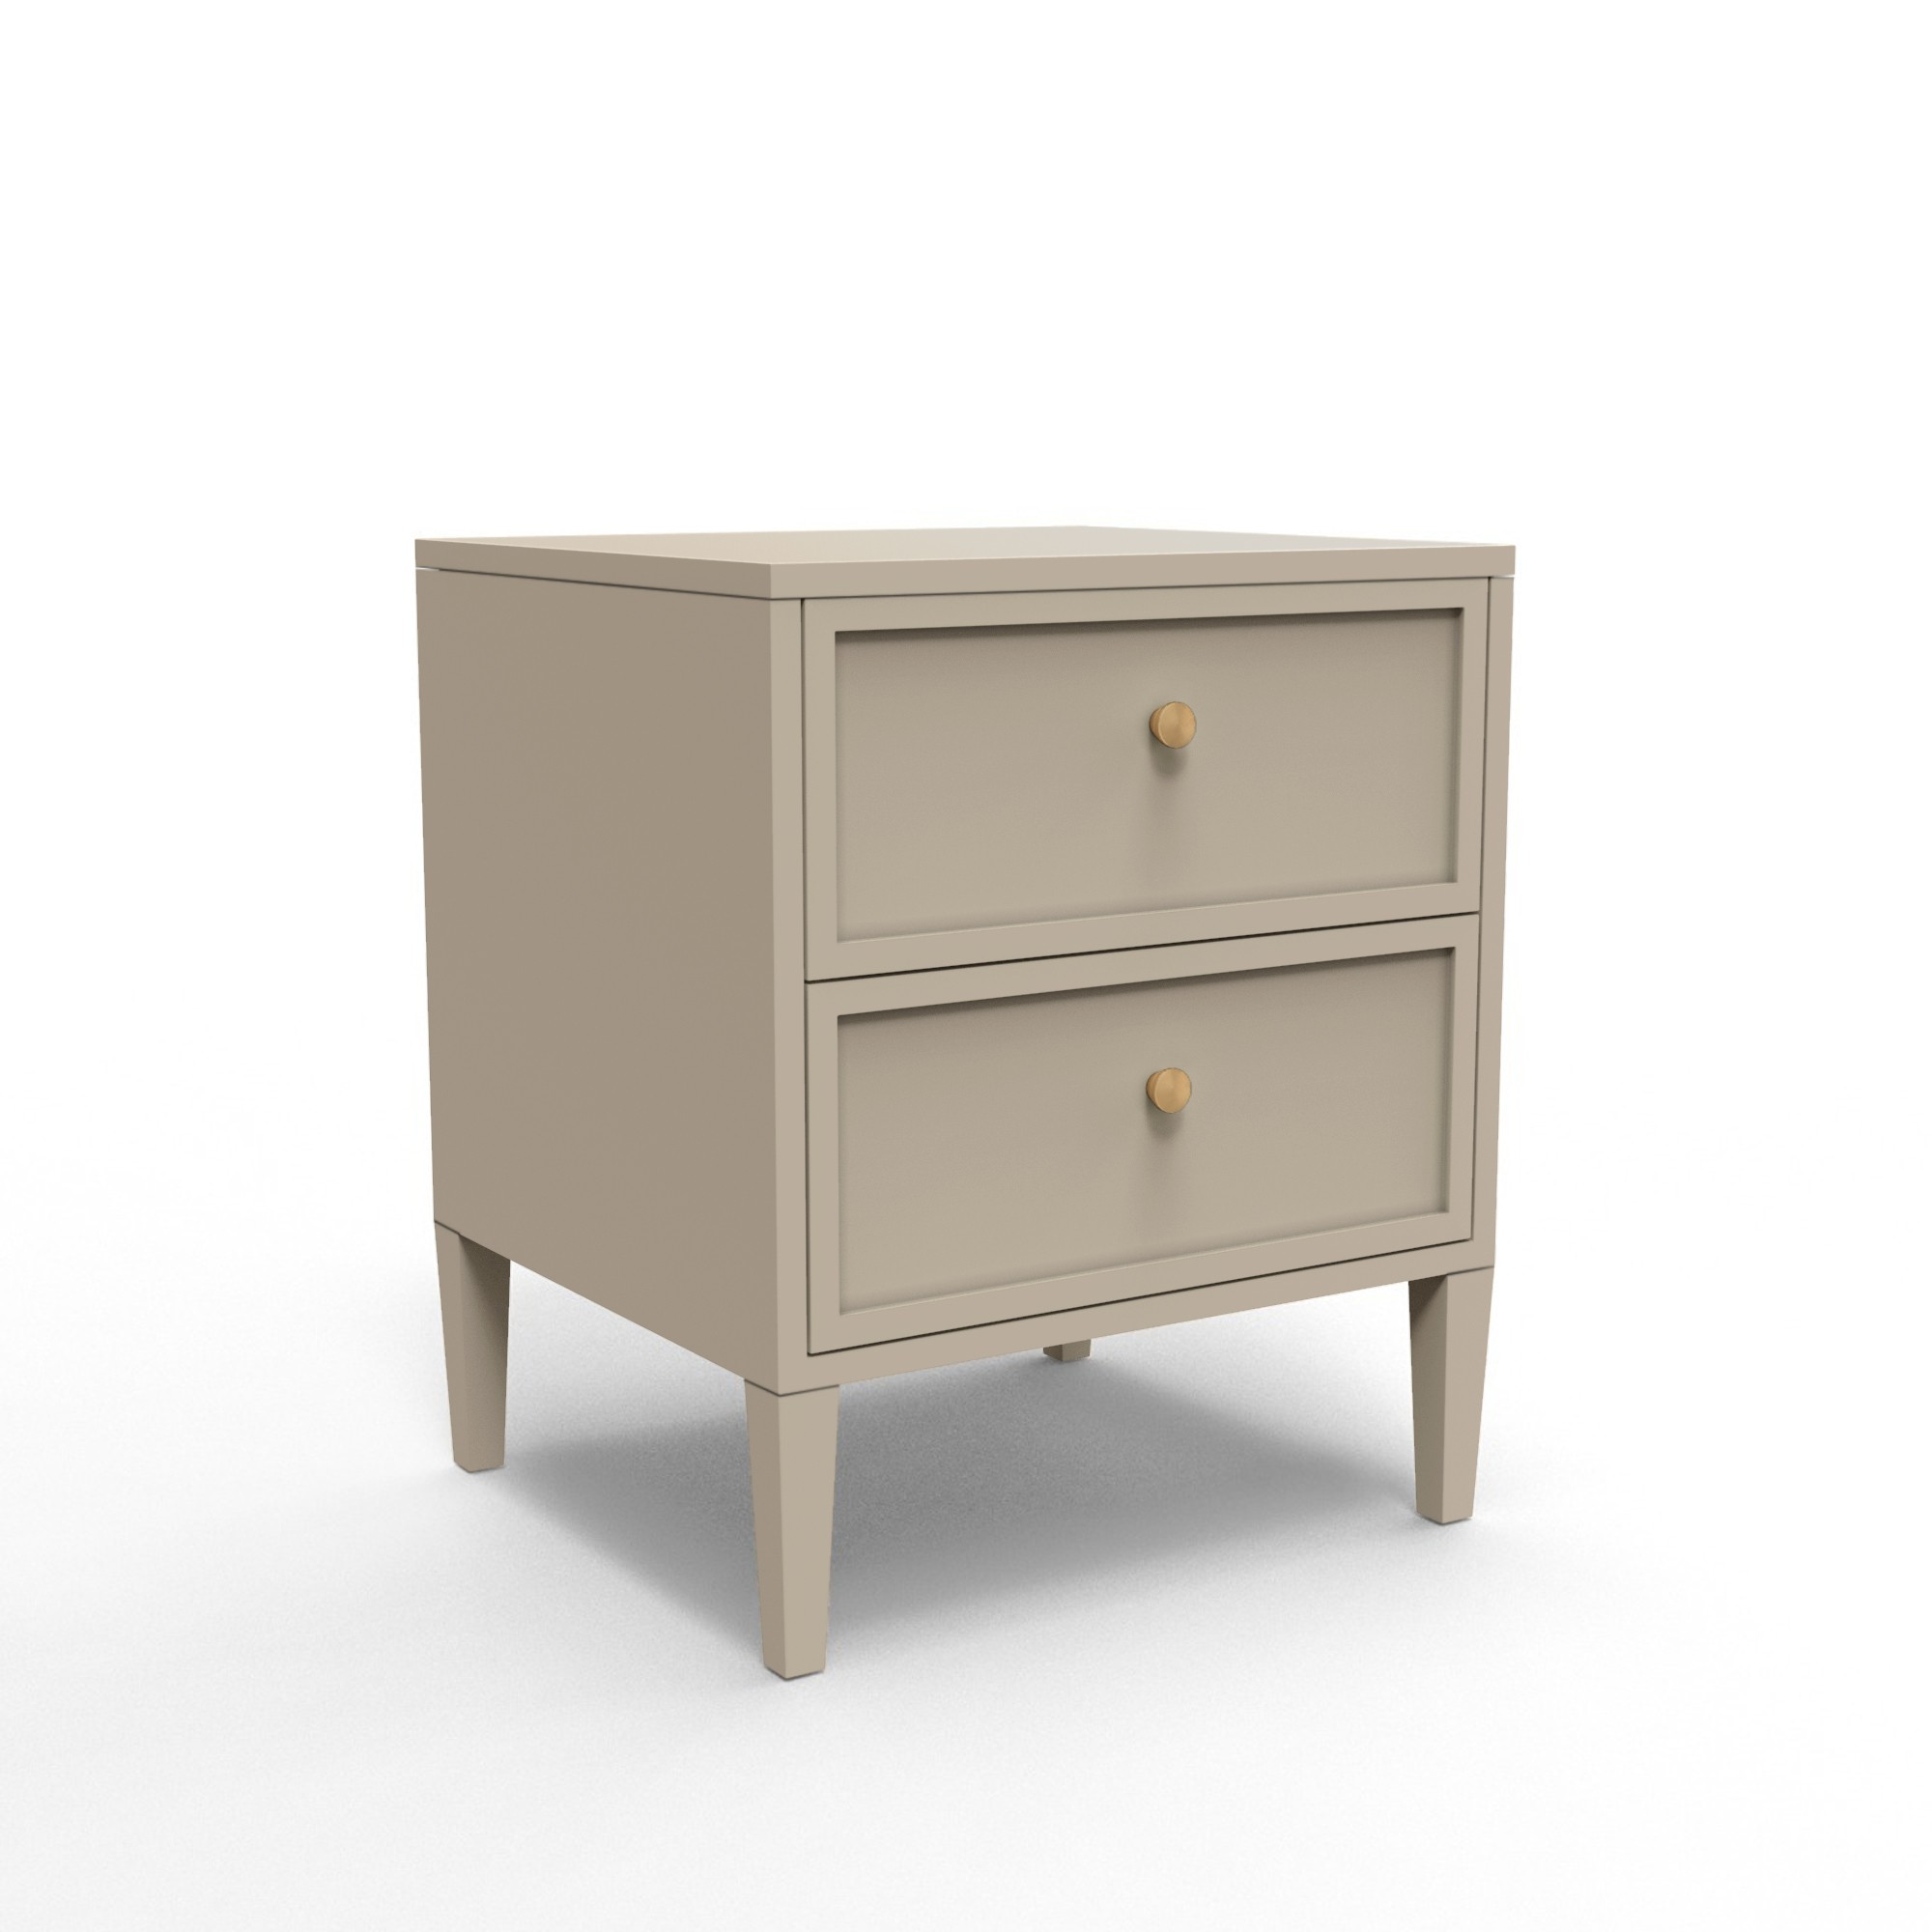 Double Drawer Bedside Table